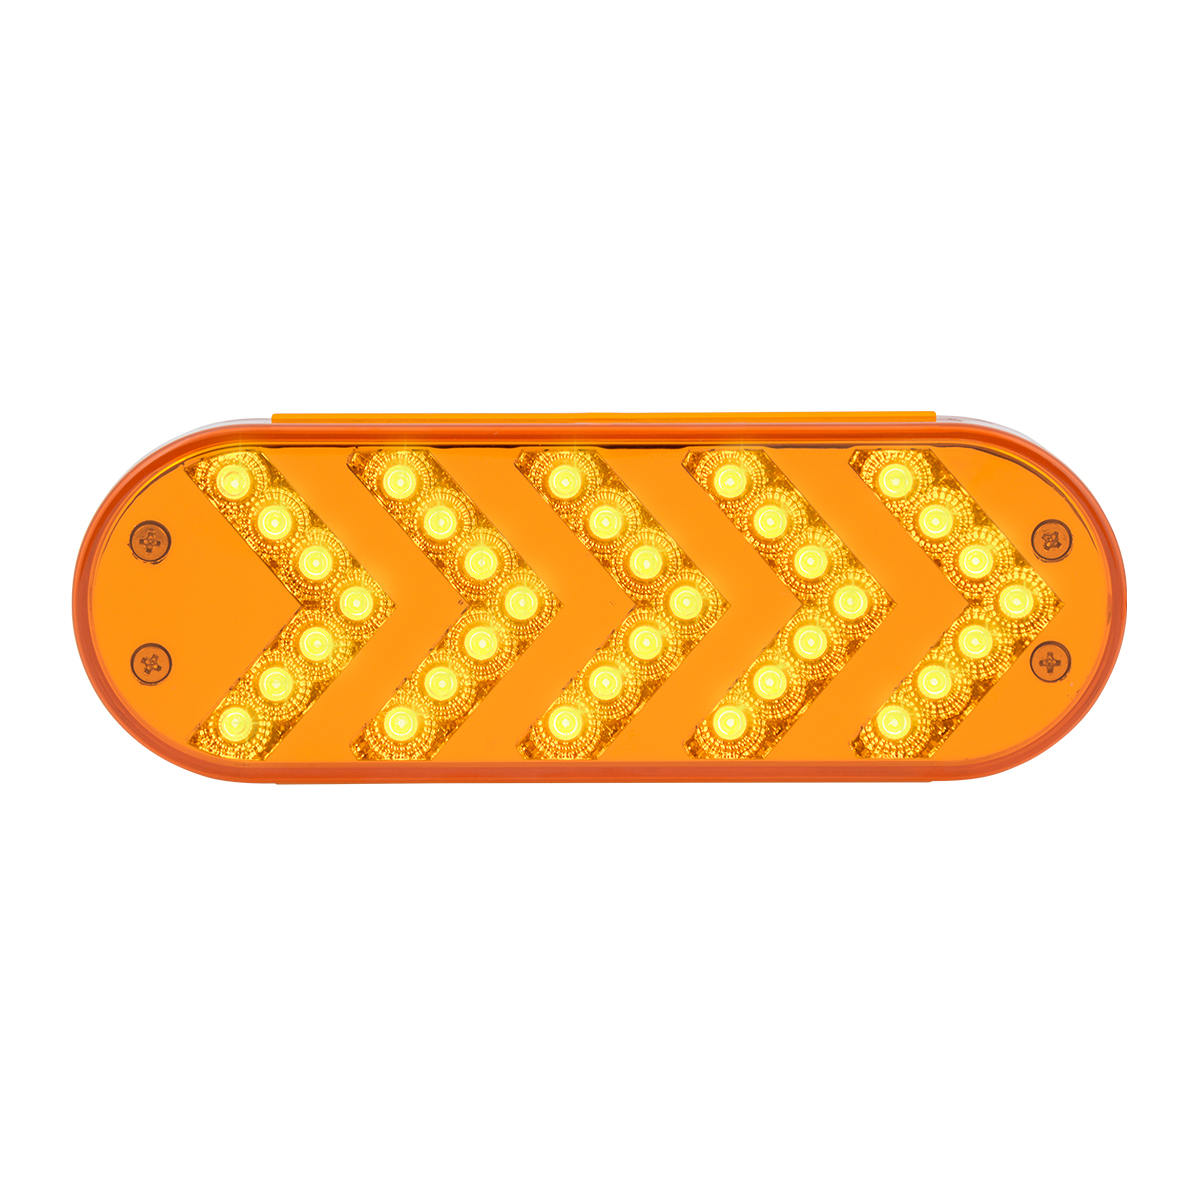 77124 Oval Sequential Arrow Spyder LED Light in Amber/Amber